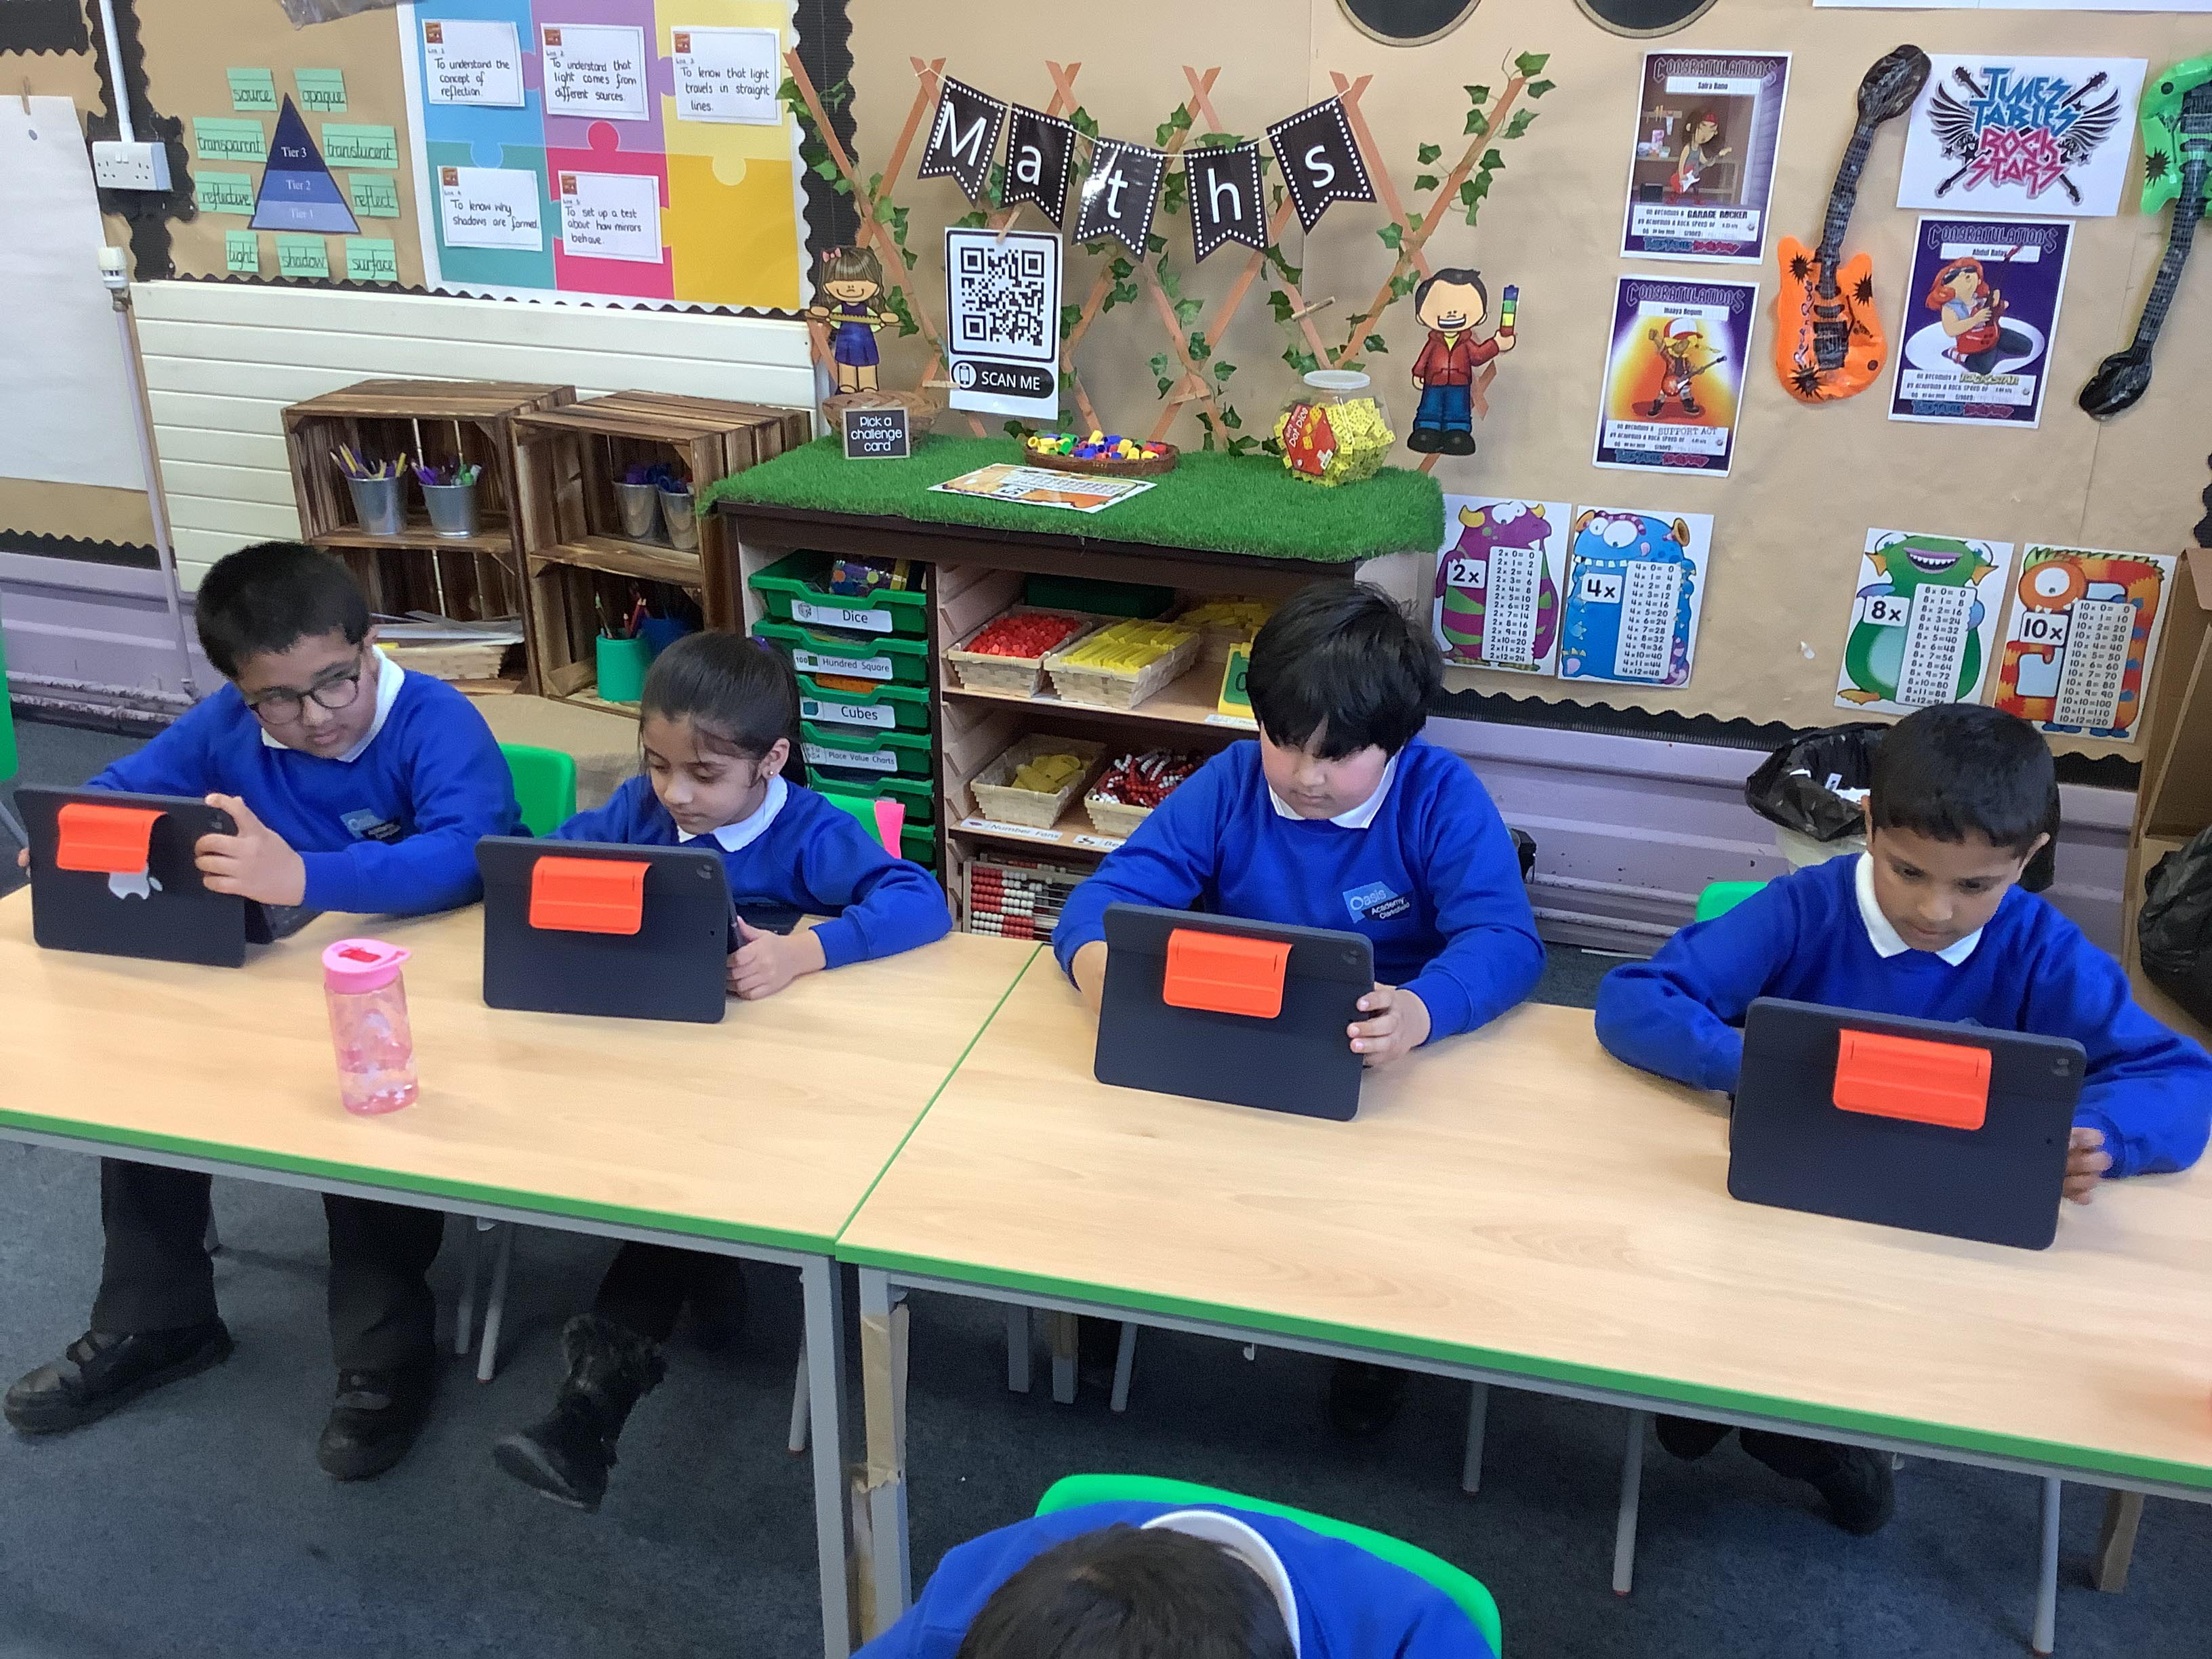 Oasis Academy Clarksfield provides an iPad to every student and teacher as part of its Horizons programme